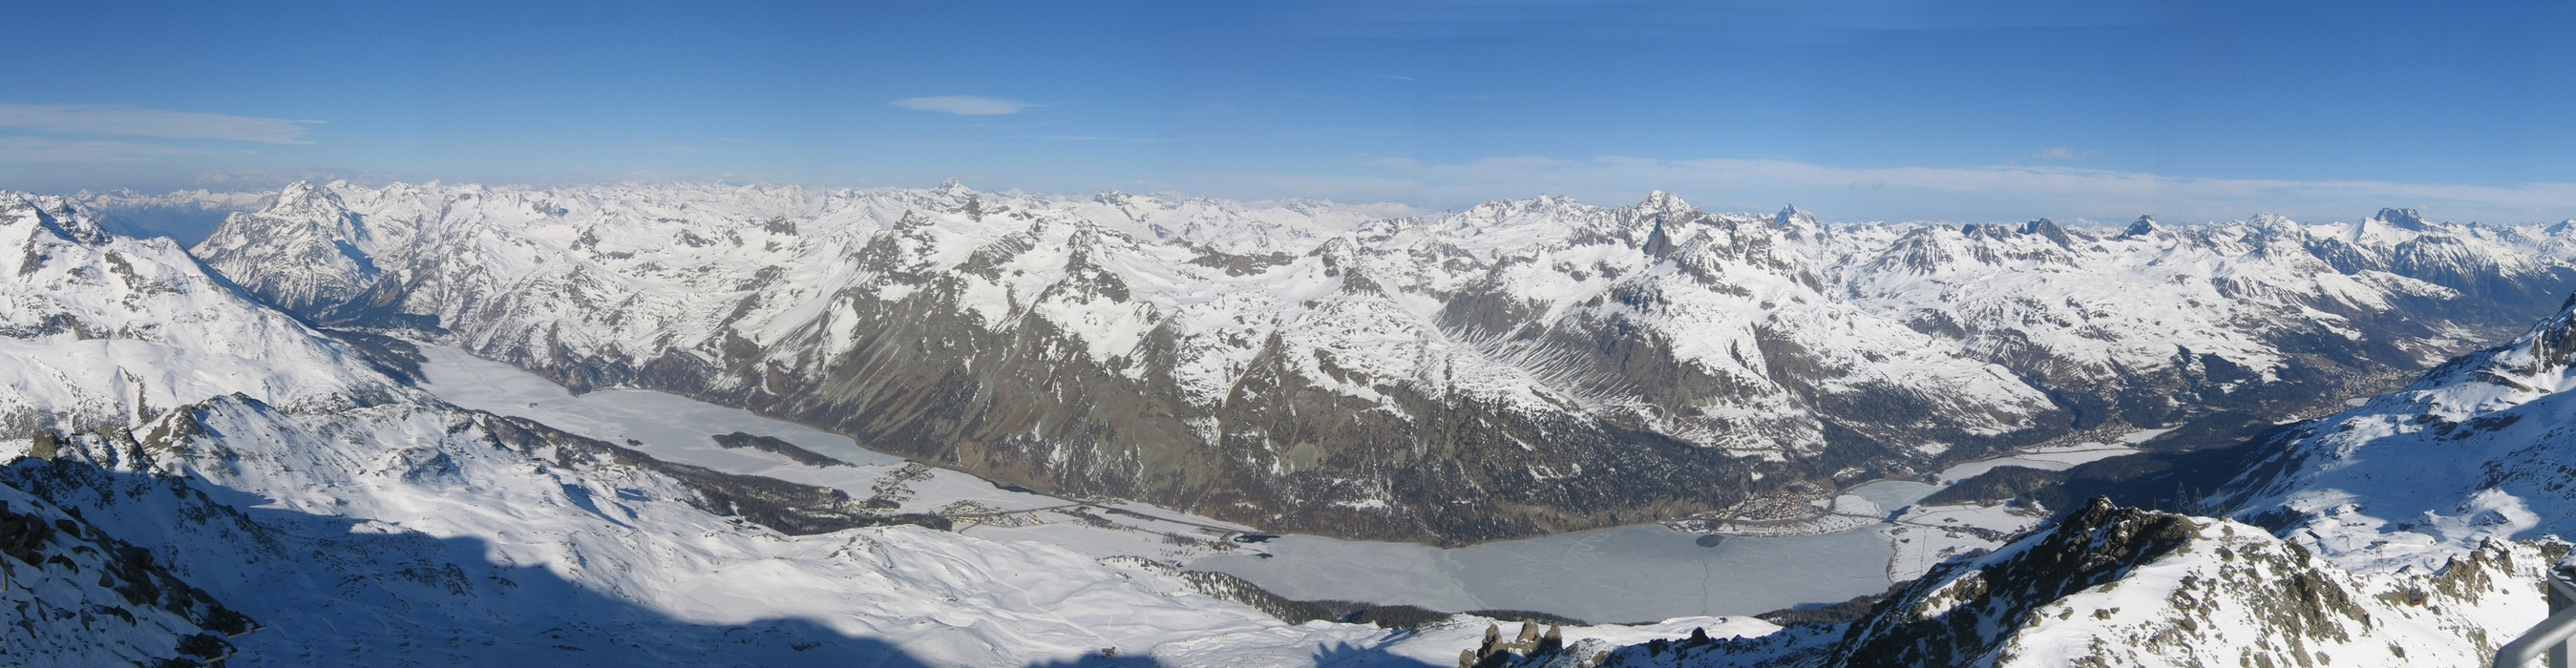 Piz Surlej - Piz San Gian Bernina Switzerland panorama 17